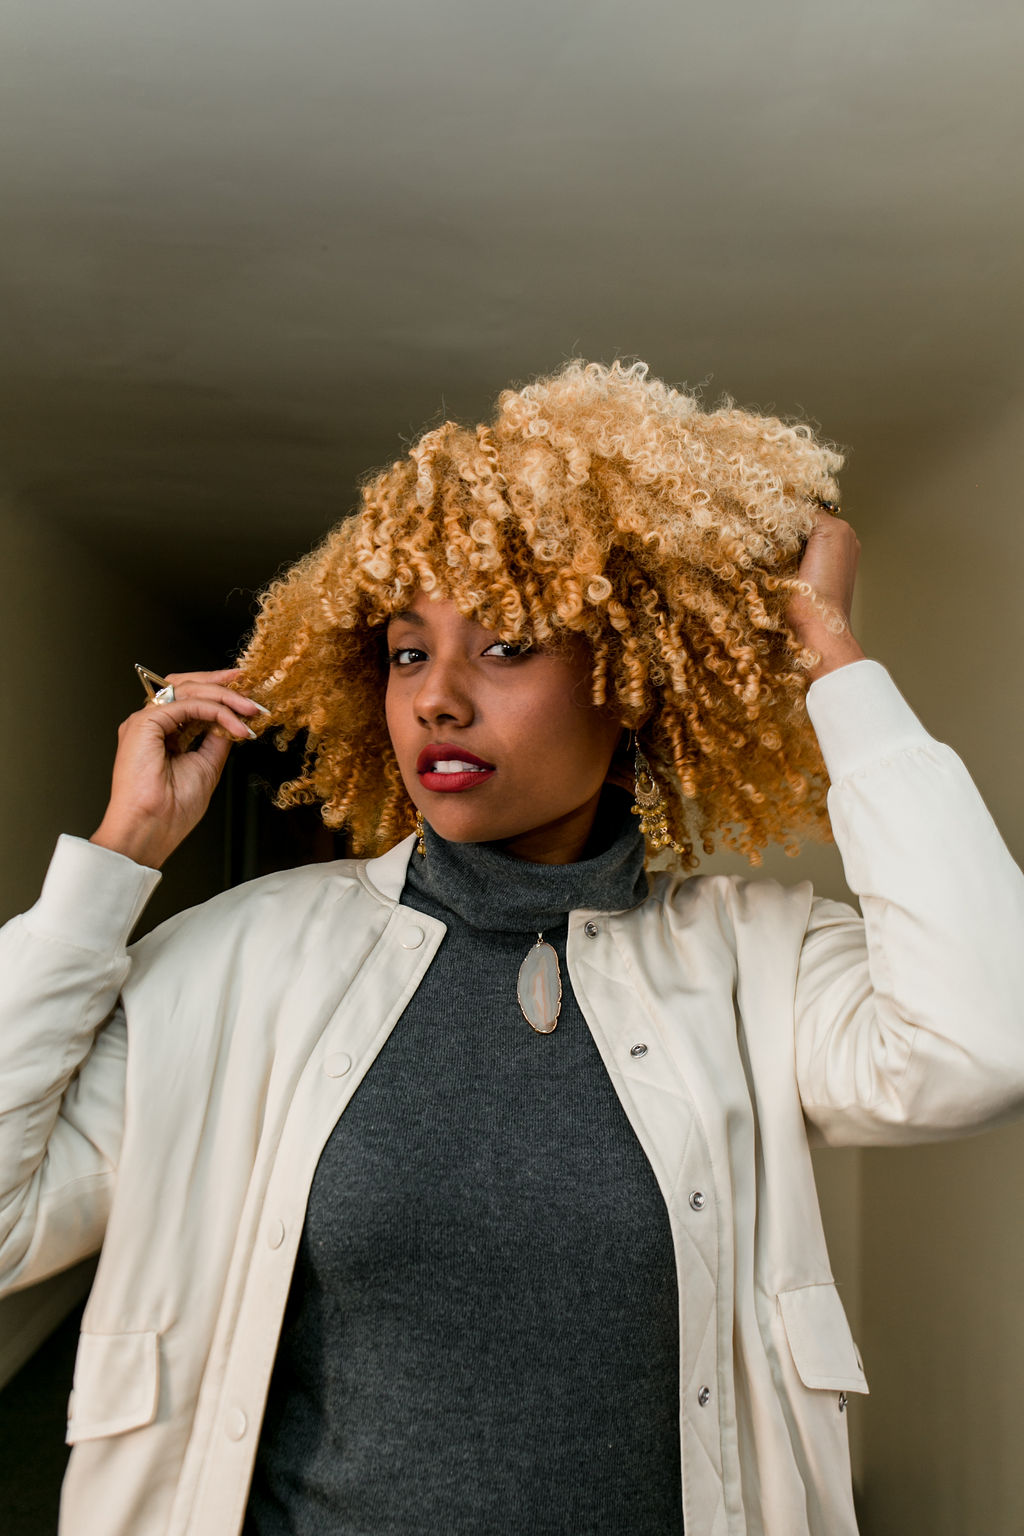 black woman with curly blonde hair